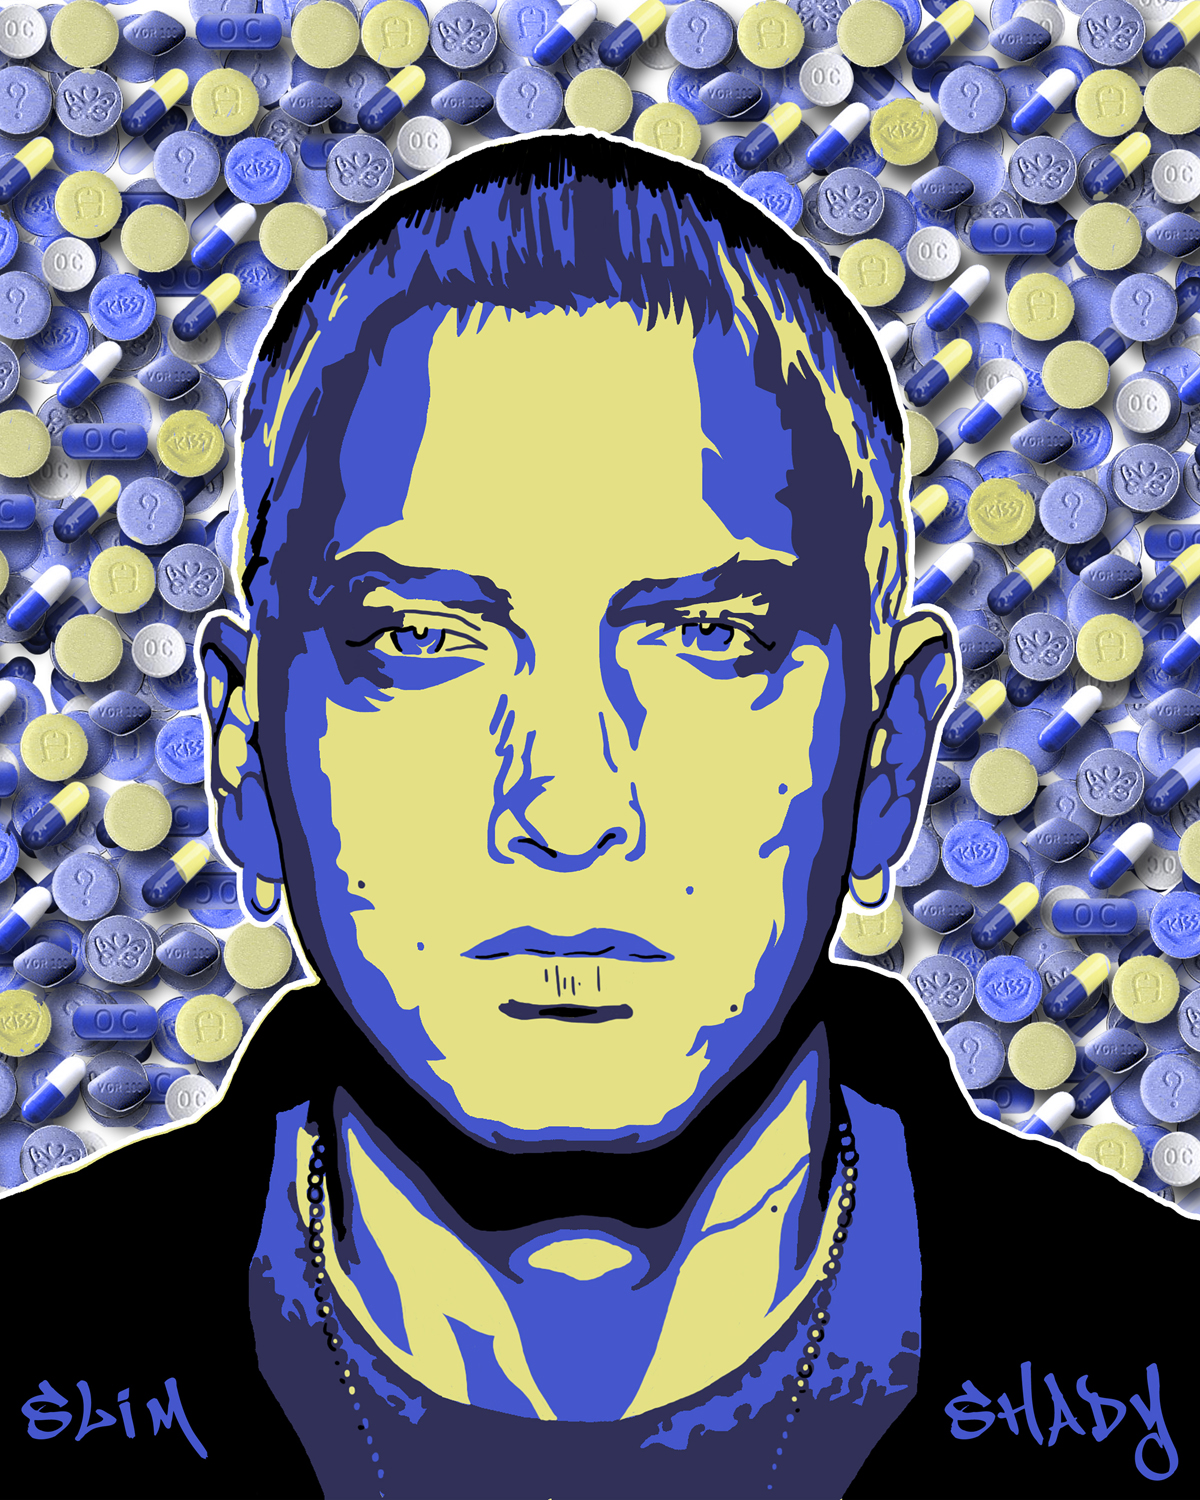 Slim Shady - Purple Pills - EMINEM Fan Art (23639871) - Fanpop